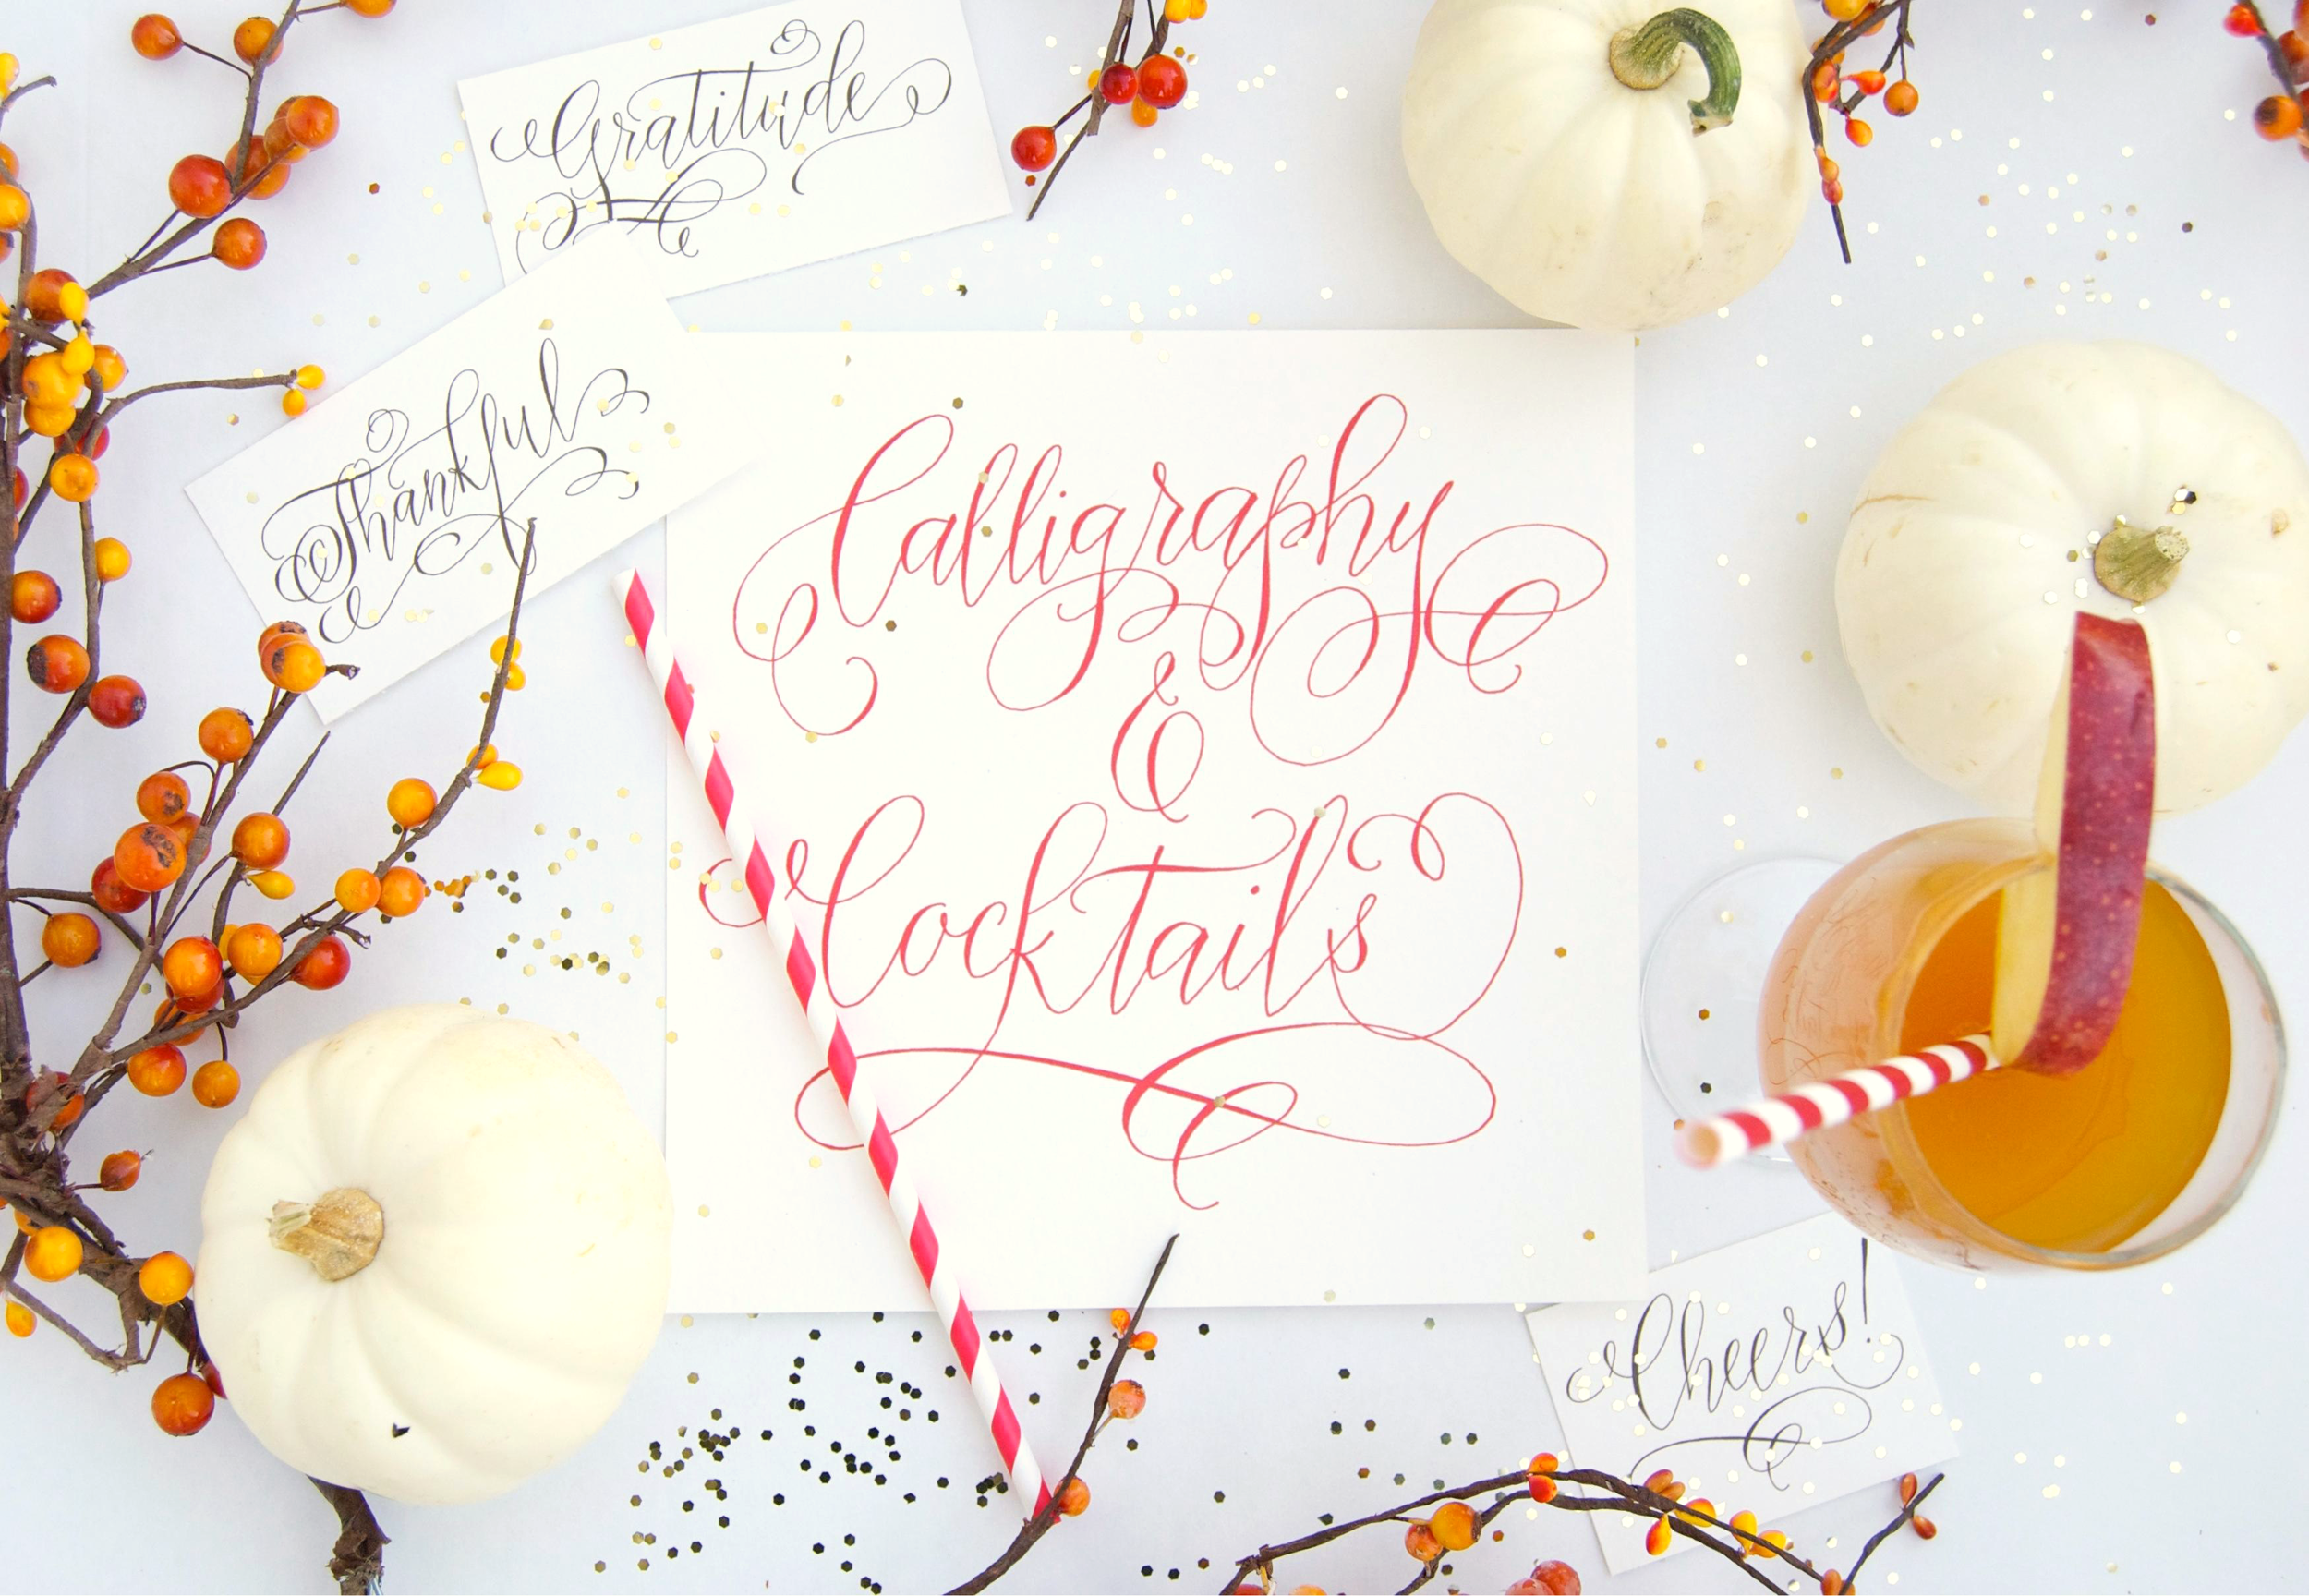 Calligraphy and Cocktails Workshop by Erica Hammer Calligraphy